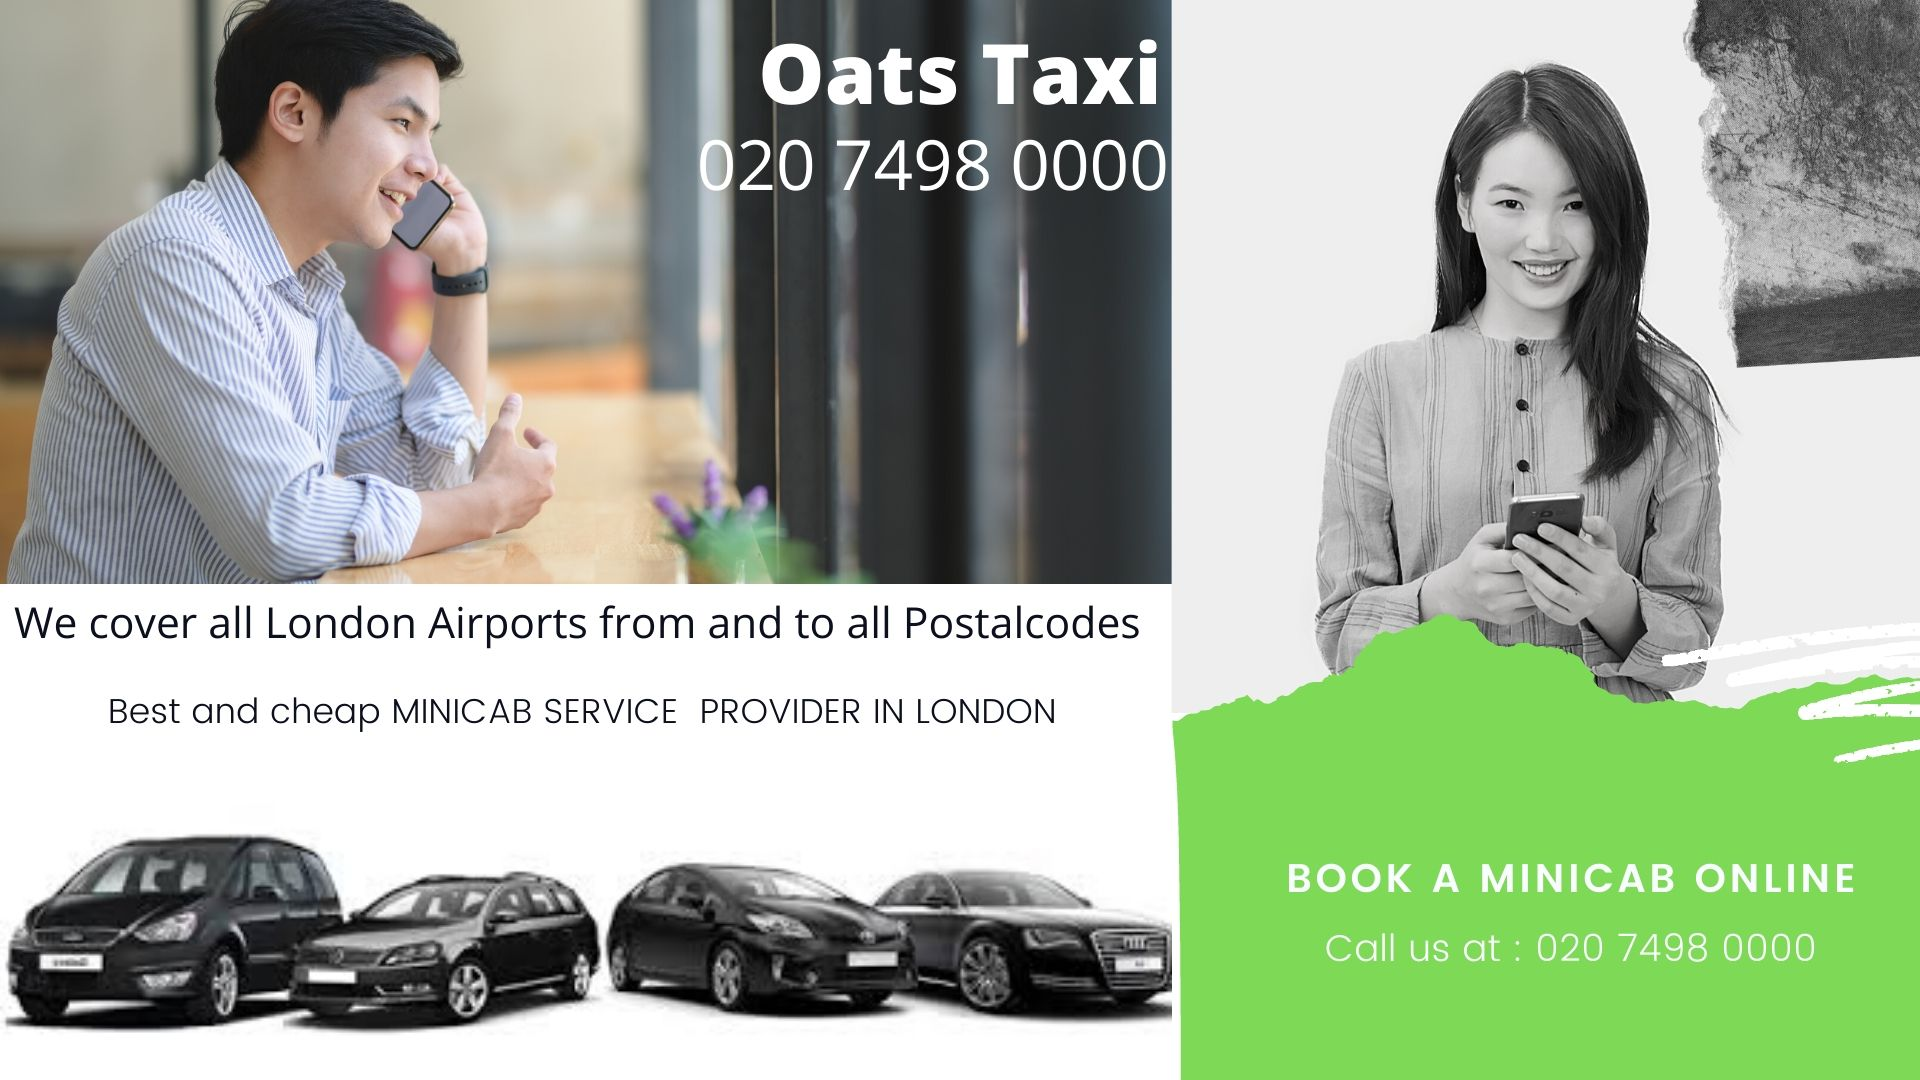 Taxi Office Near CRANLEIGH MEWS, Battersea SW11, Taxi From Battersea SW11 To Gatwick Airport